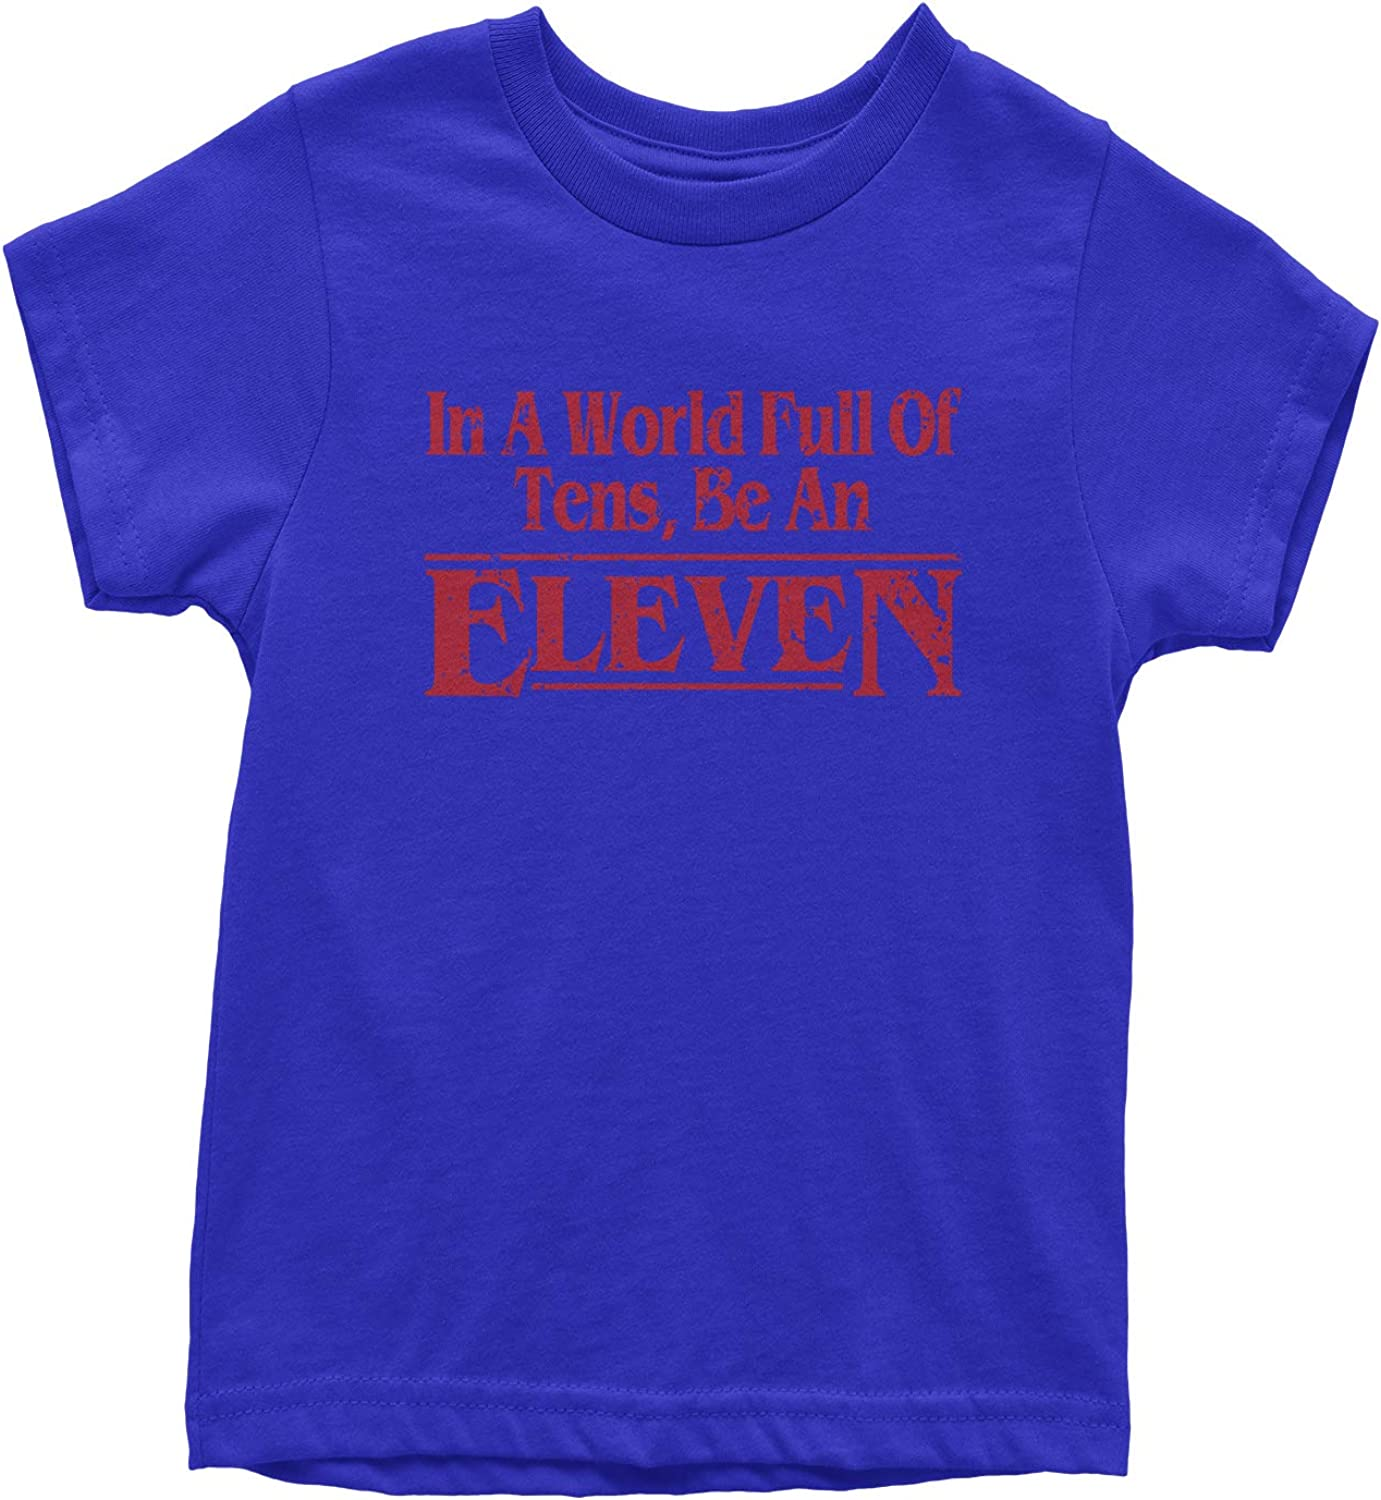 Be an Eleven Youth T-Shirt Expression Tees in A World Full of Tens